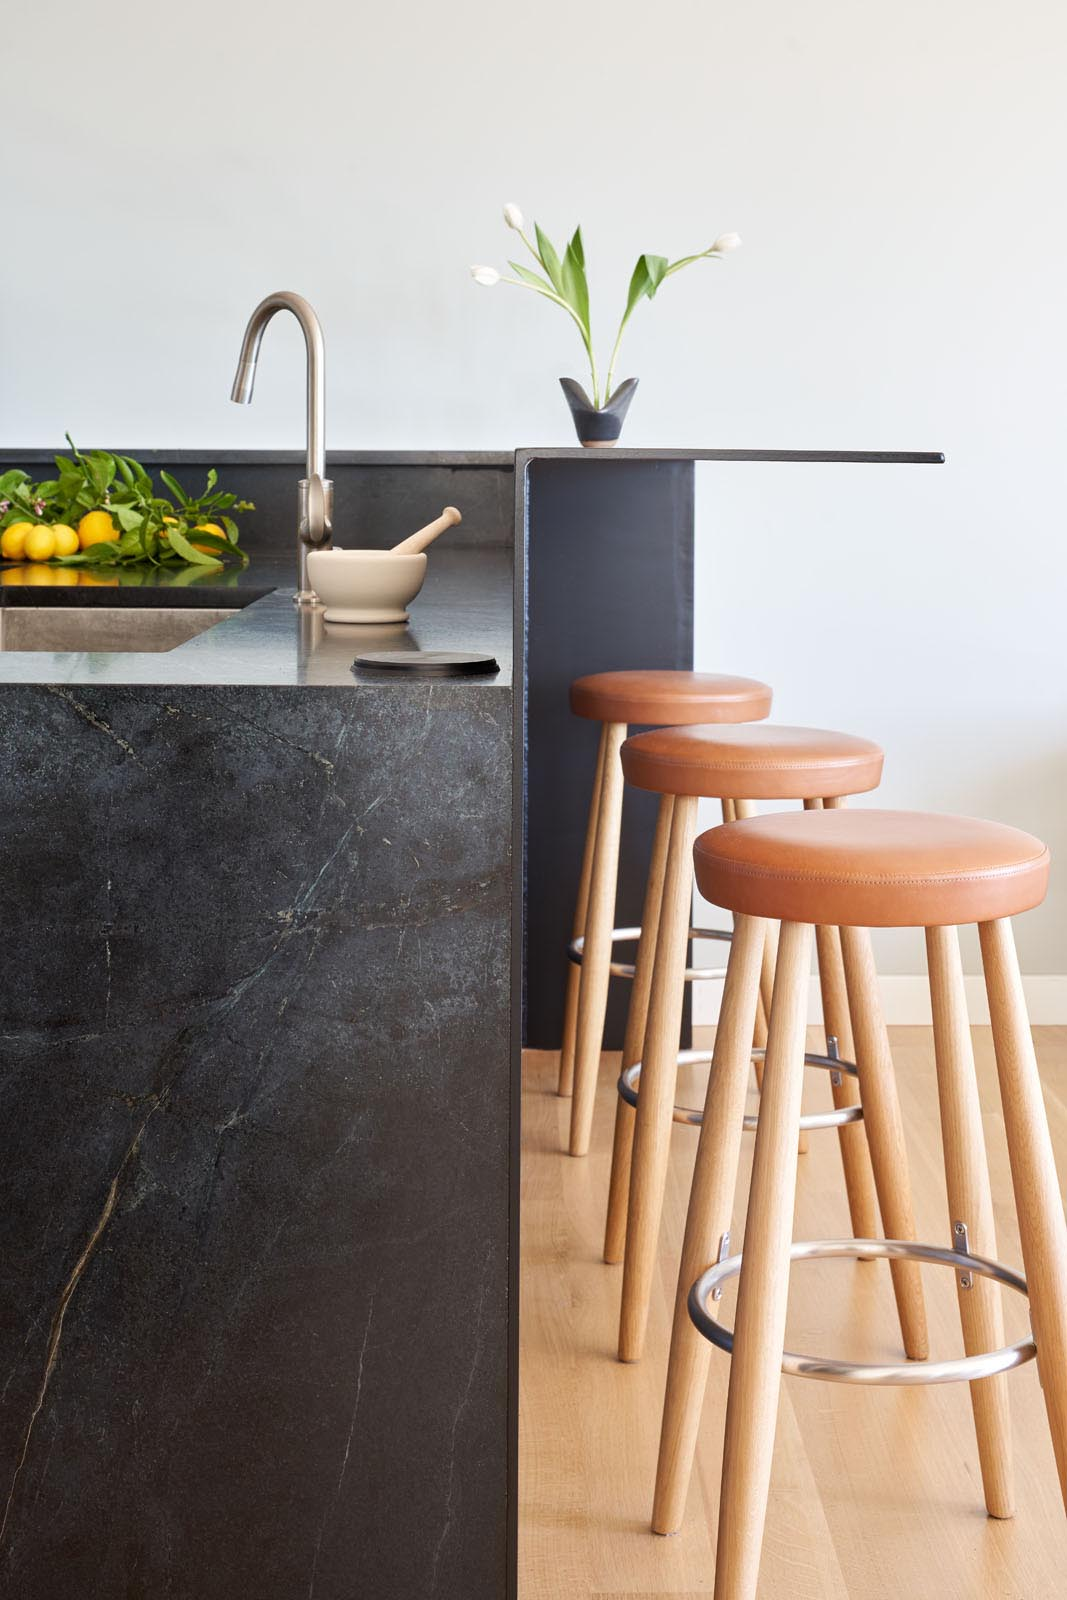 This modern kitchen has dark countertops that connect with a raised steel breakfast bar.